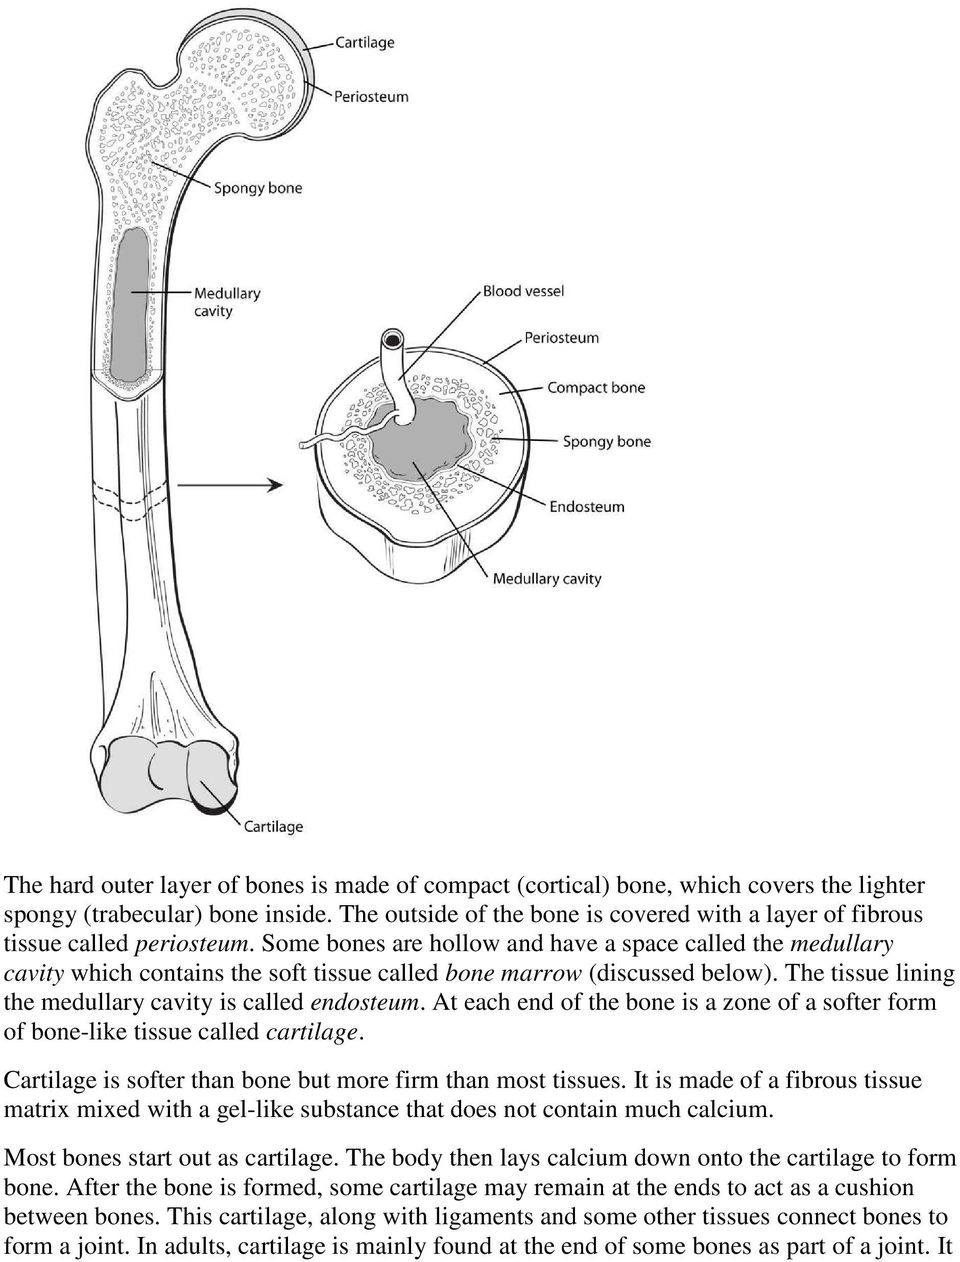 Some bones are hollow and have a space called the medullary cavity which contains the soft tissue called bone marrow (discussed below). The tissue lining the medullary cavity is called endosteum.